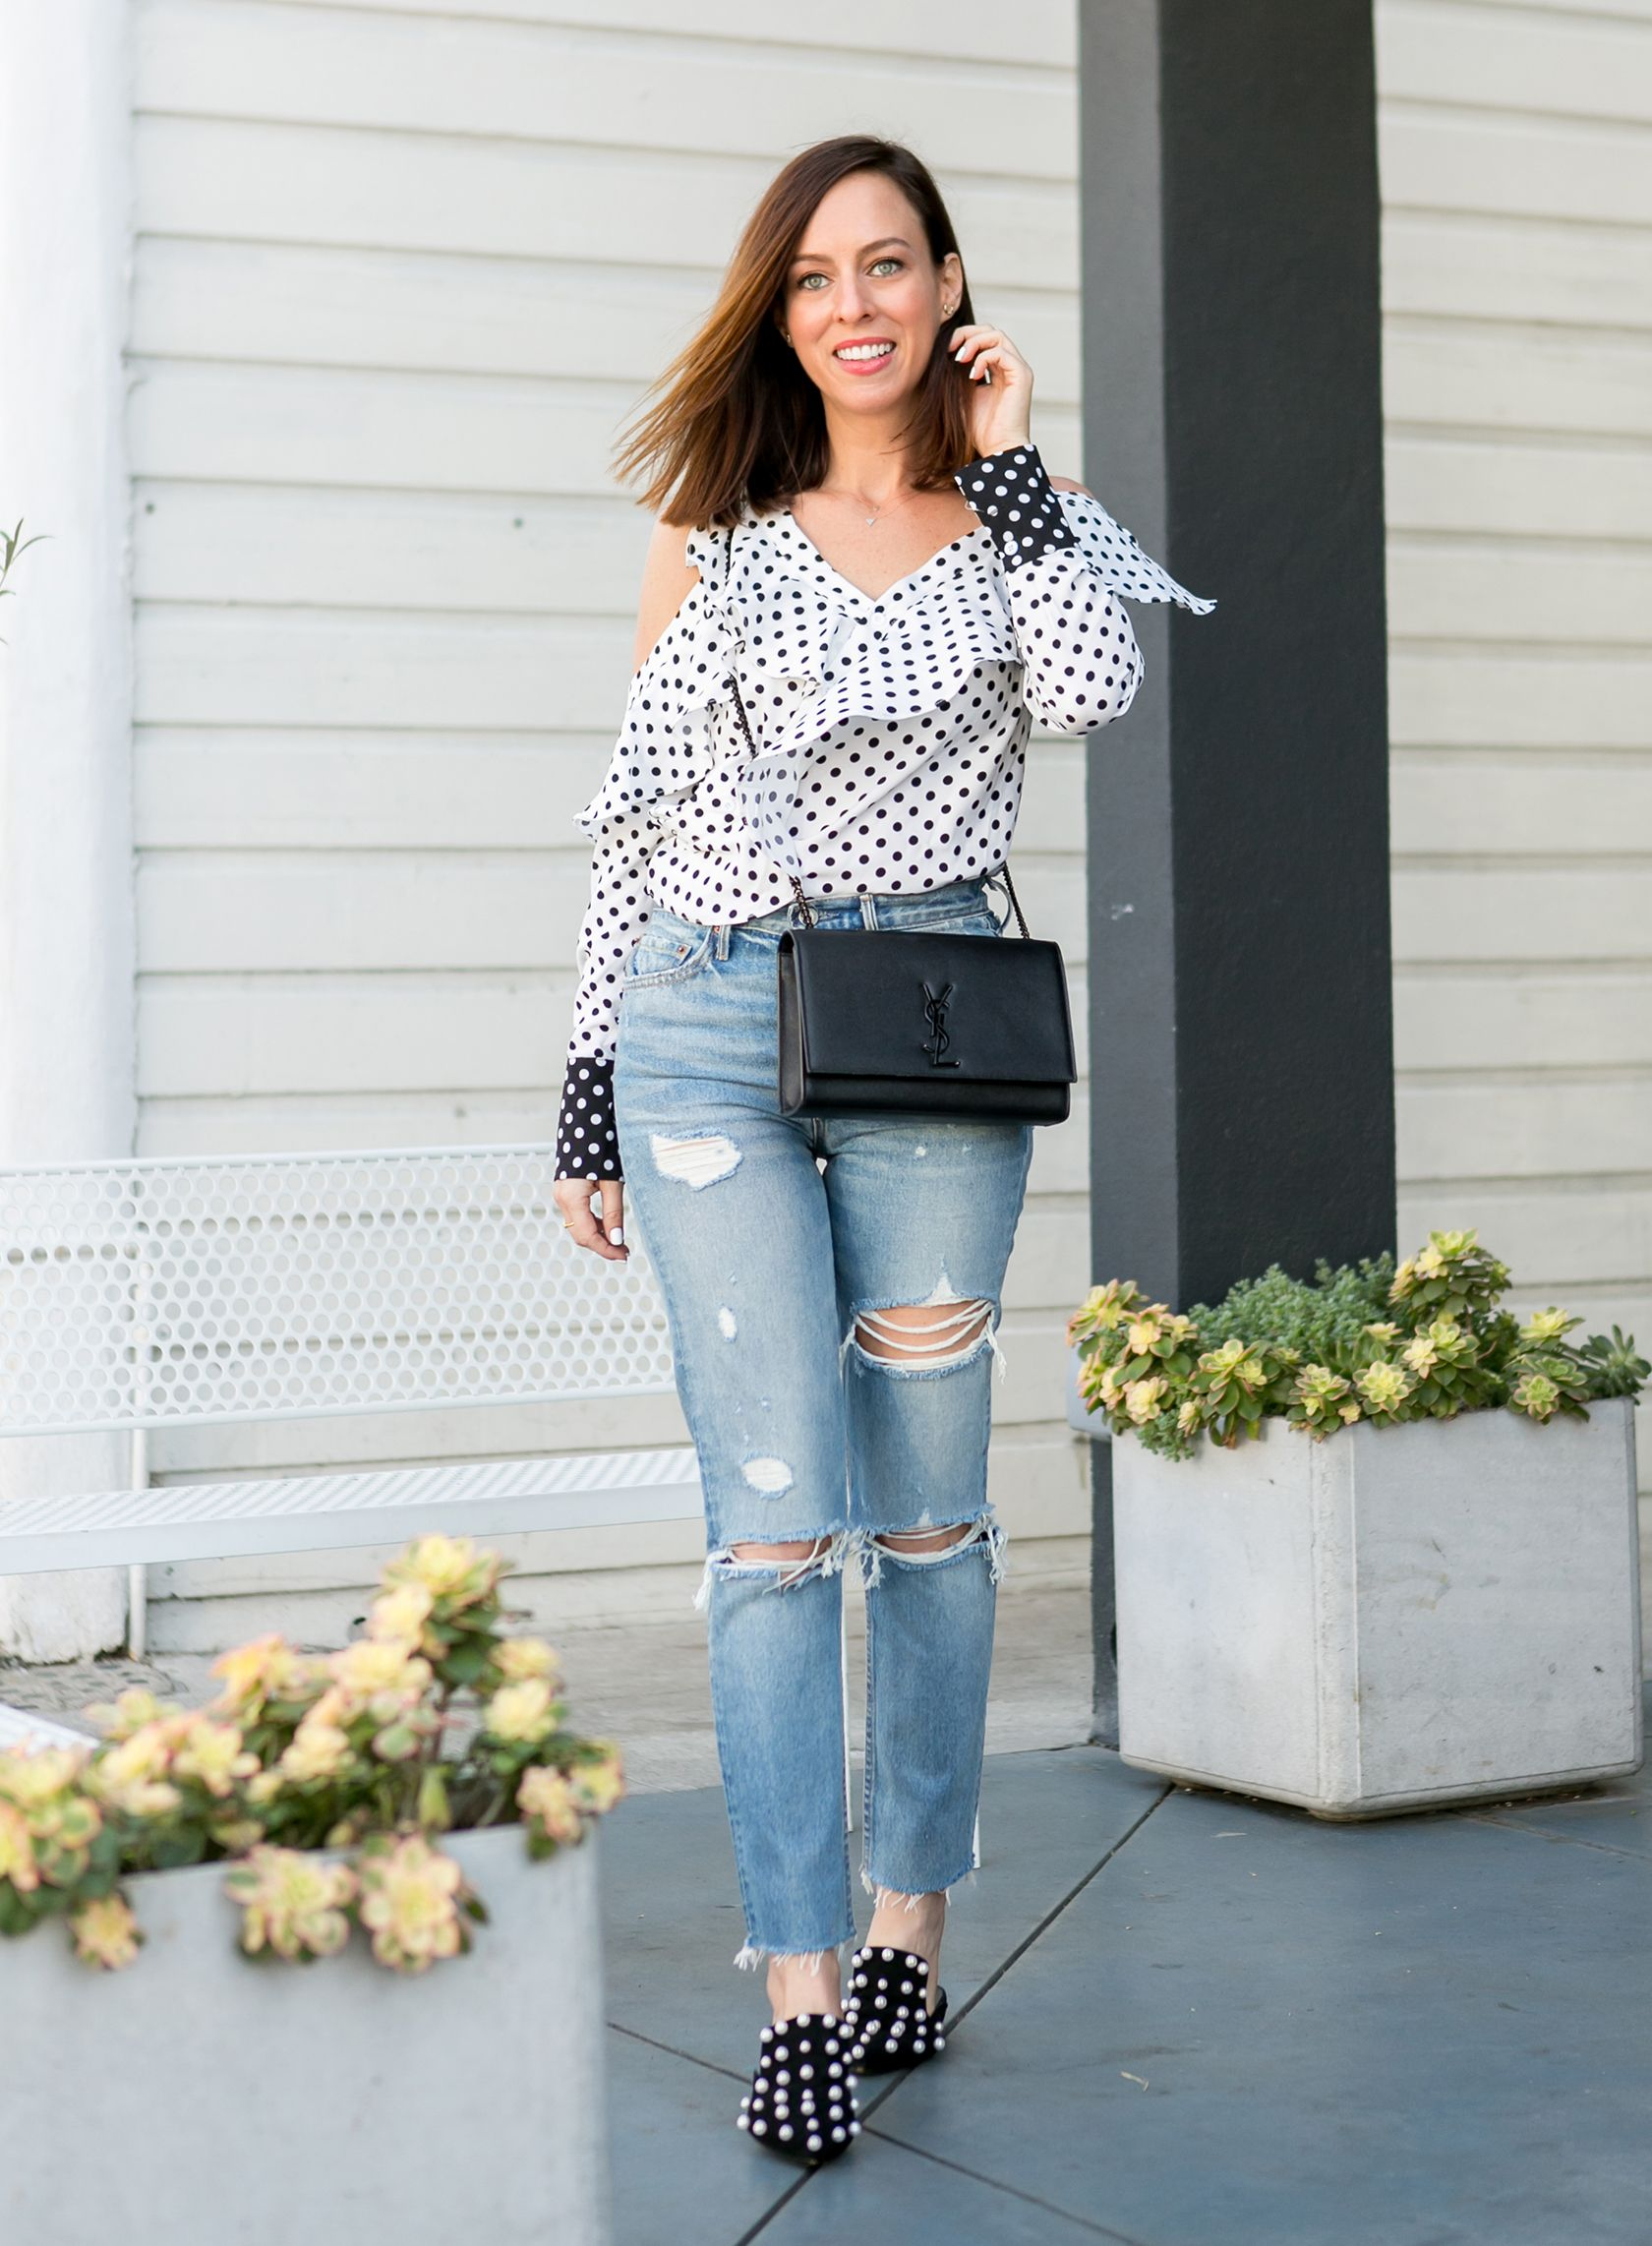 ... check out db658 c173a Fashion beauty · Sydne Style shows how to wear  polka dots for ... 32617faced